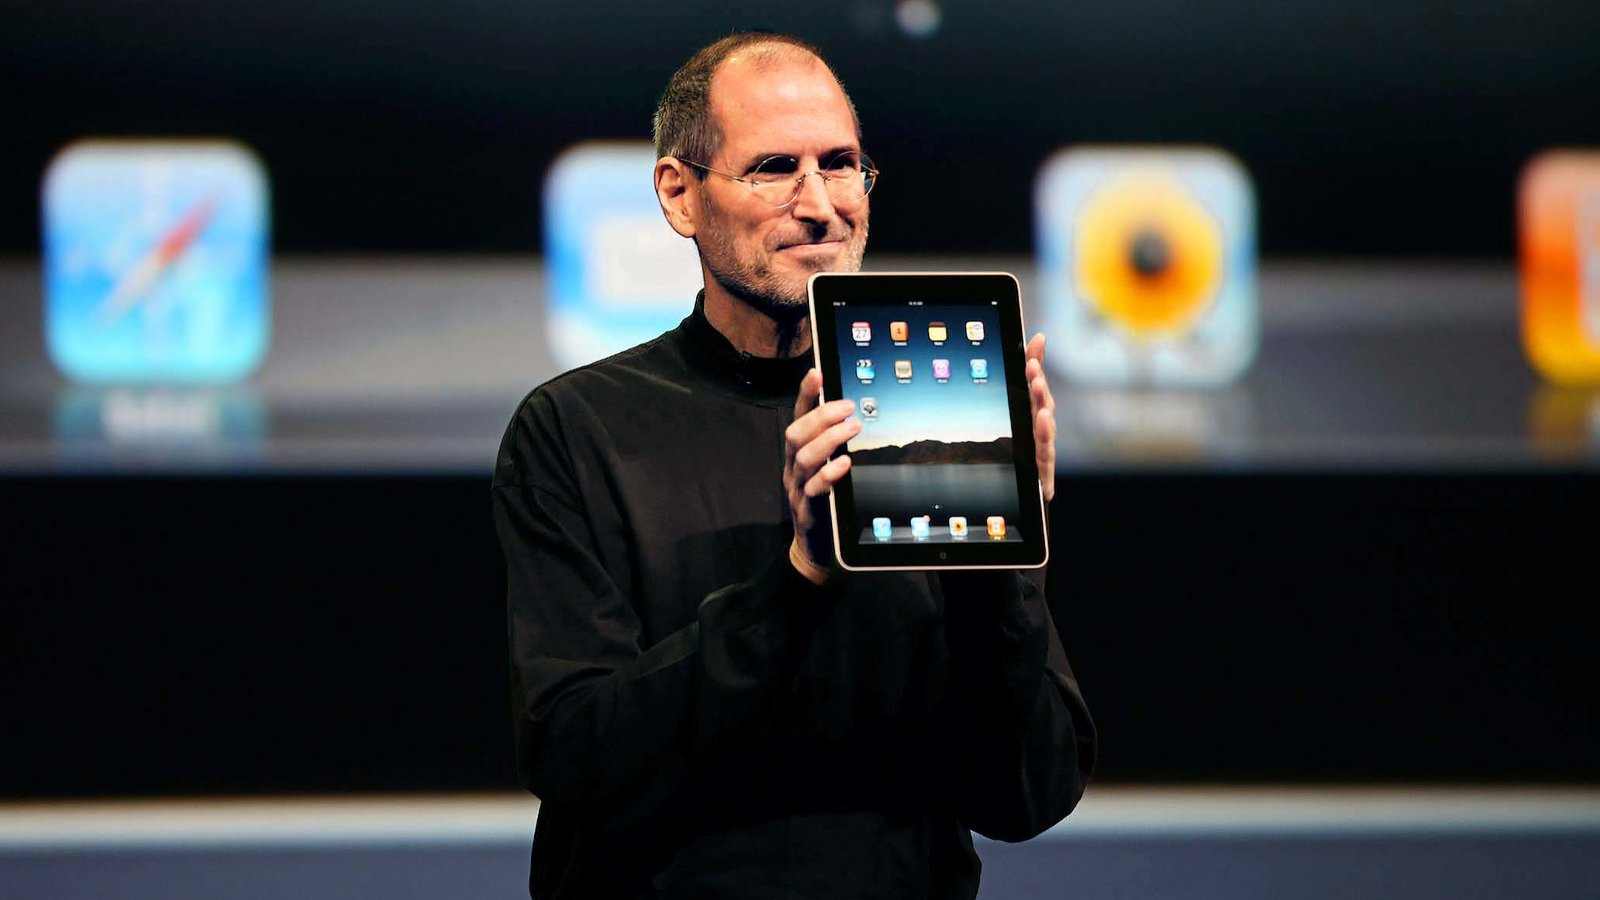 Steve Jobs planned to insert Intel chips in iPad and iPhone before going in-house